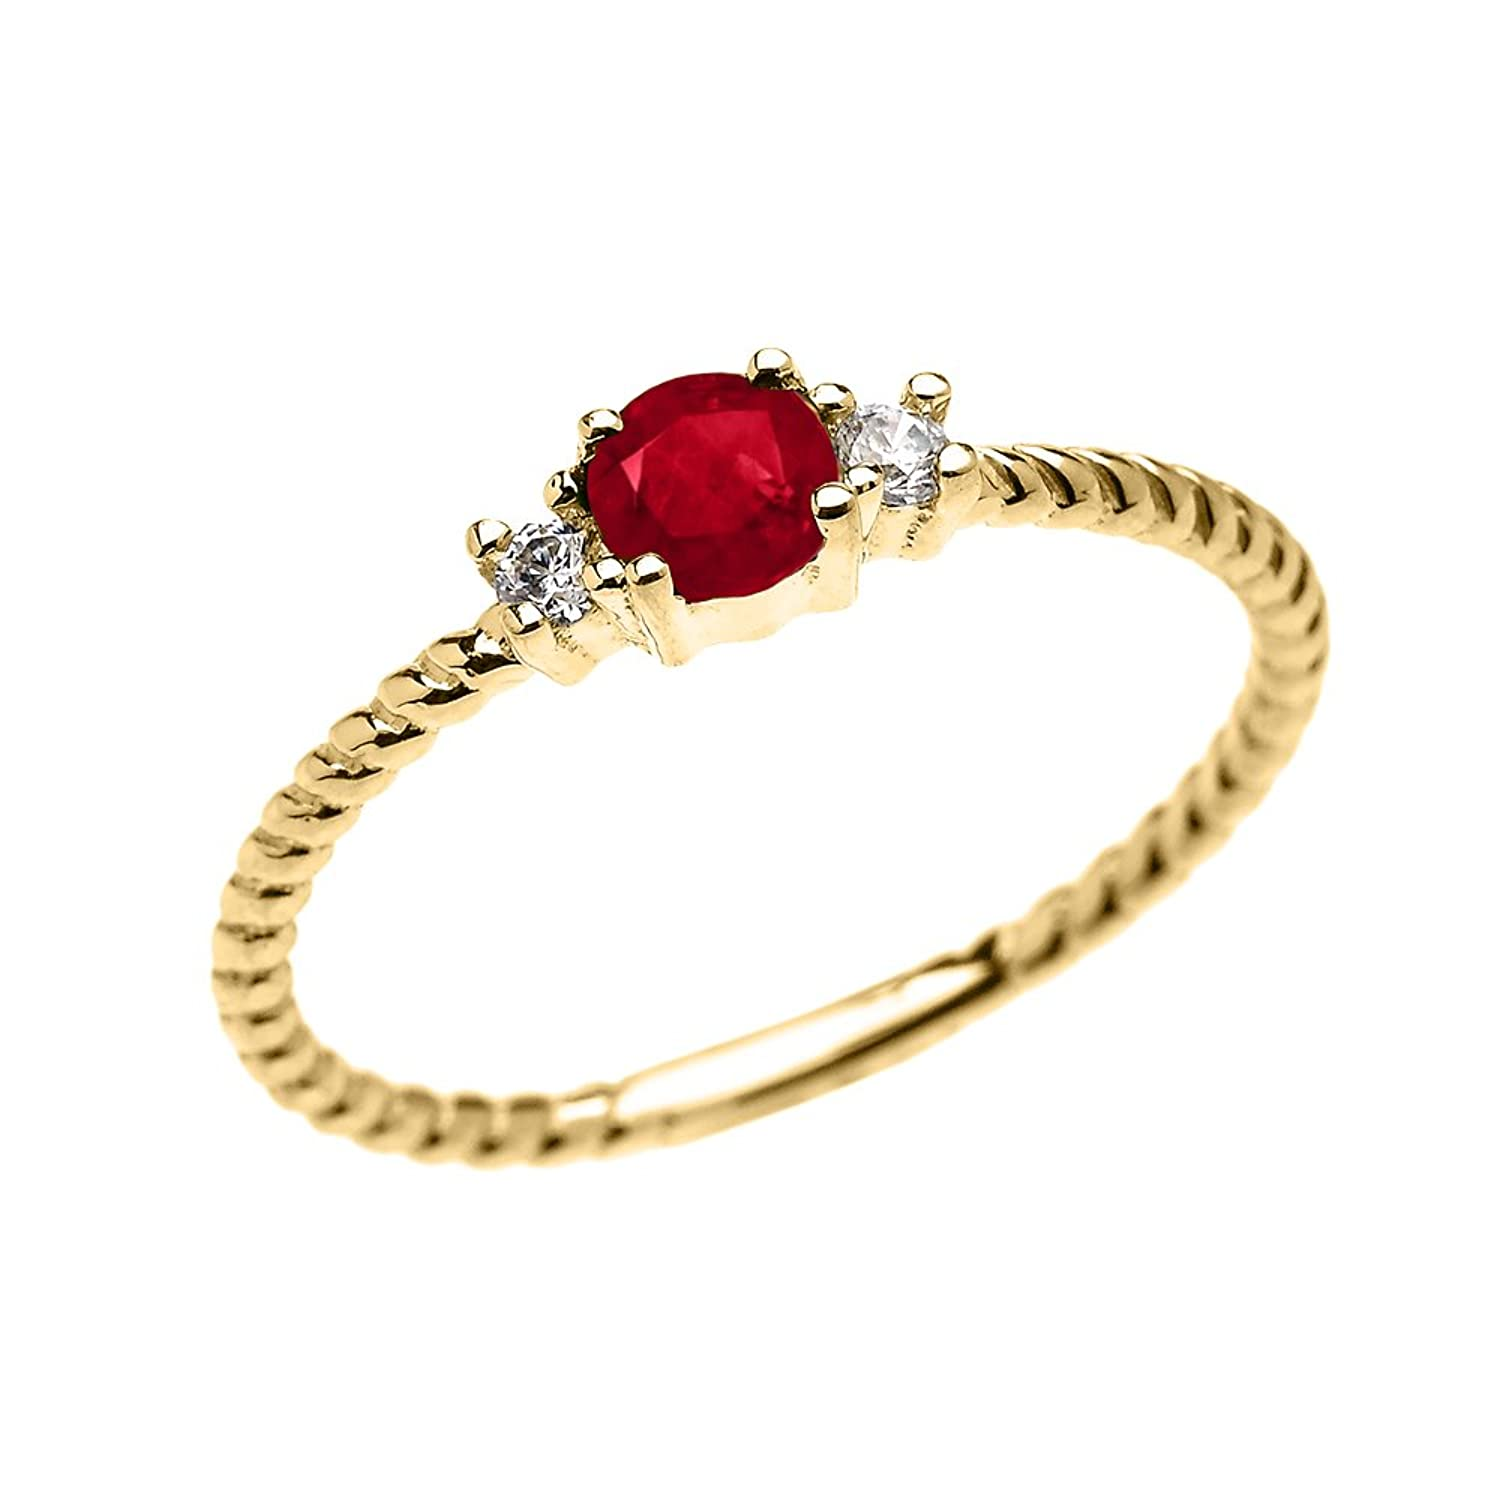 10k Yellow Gold Dainty Solitaire Ruby and White Topaz Rope Design Stackable/Proposal Ring